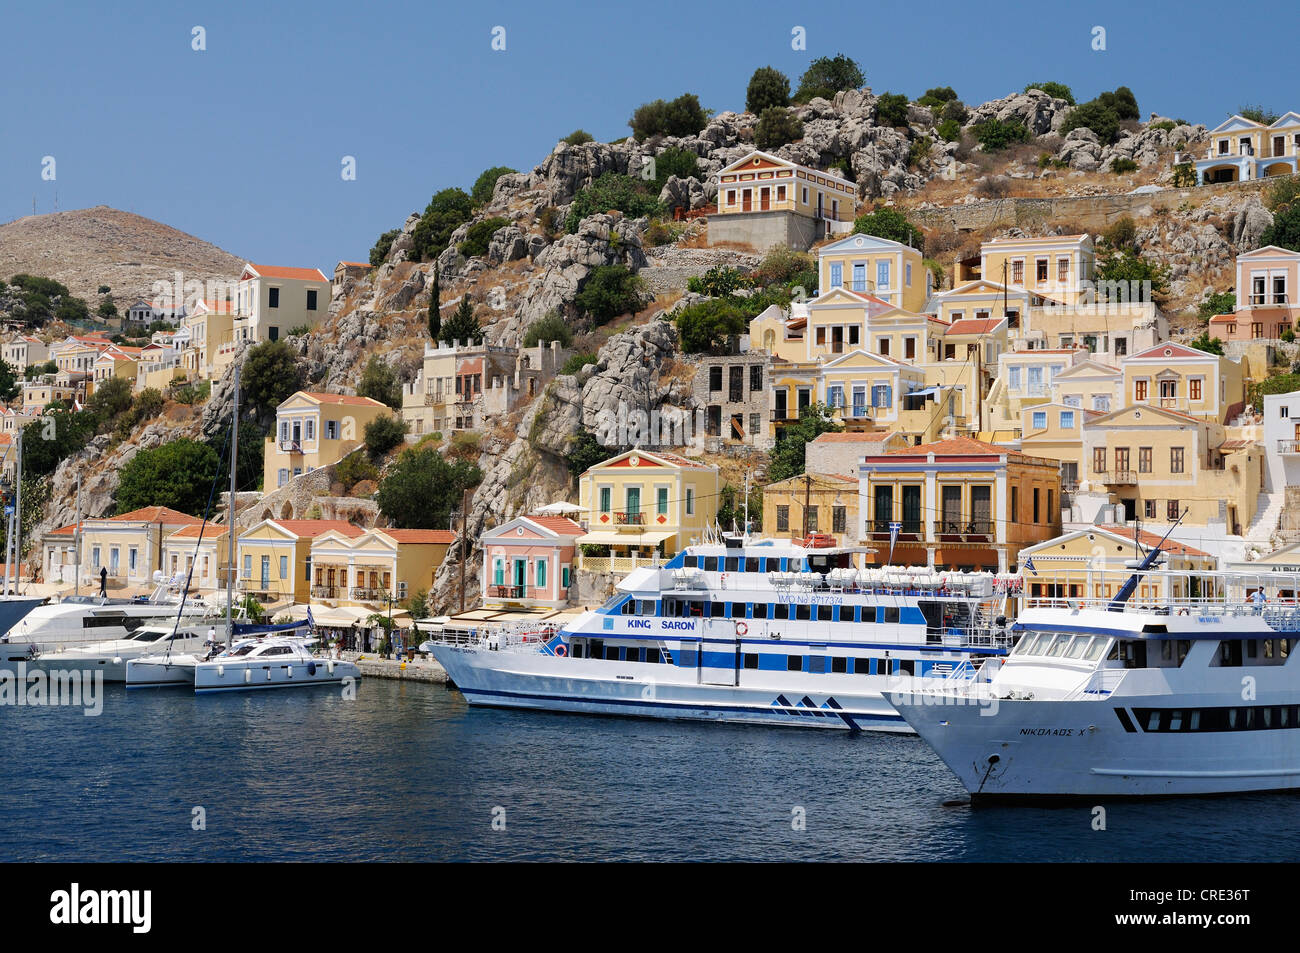 Dock with excursion boats at the center of the island of Symi near Rhodes, Greece, Europe - Stock Image